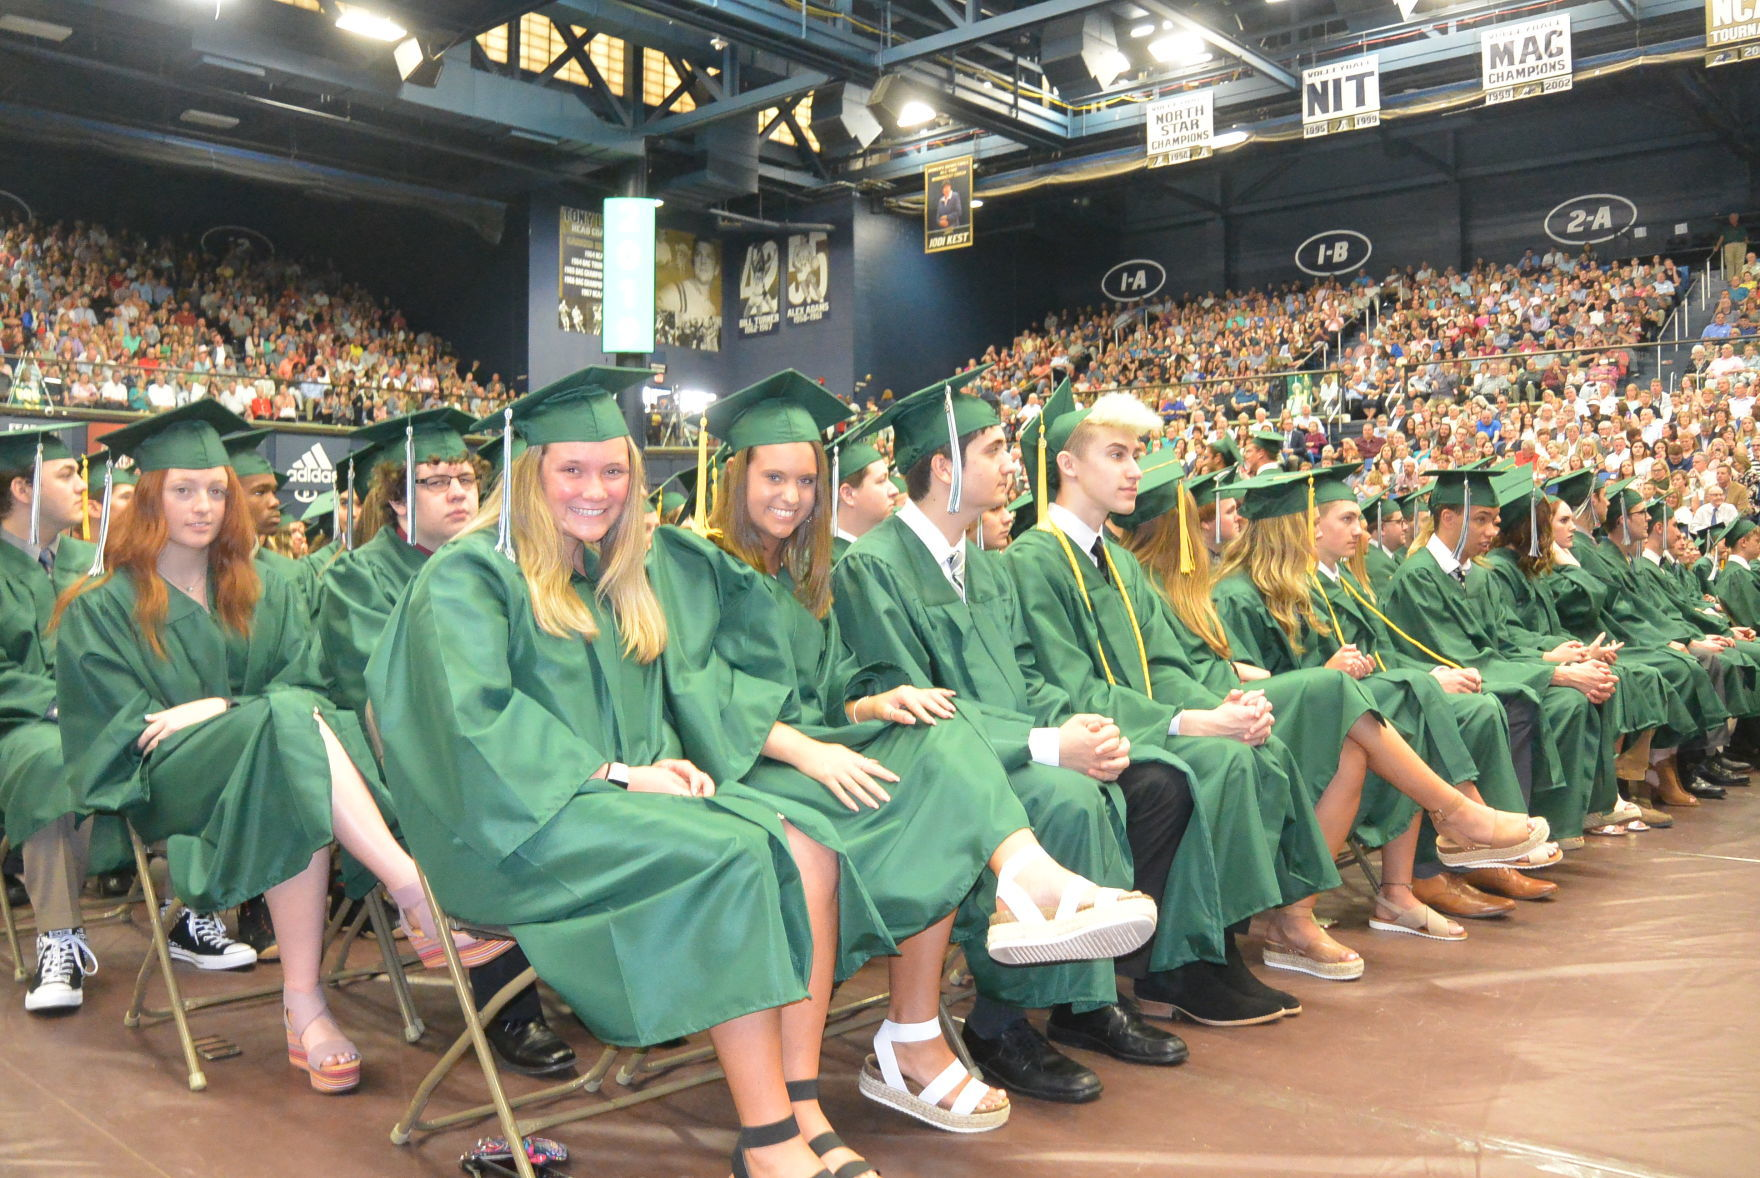 Medina High School Graduates 608 Seniors Medina Thepostnewspapers Com